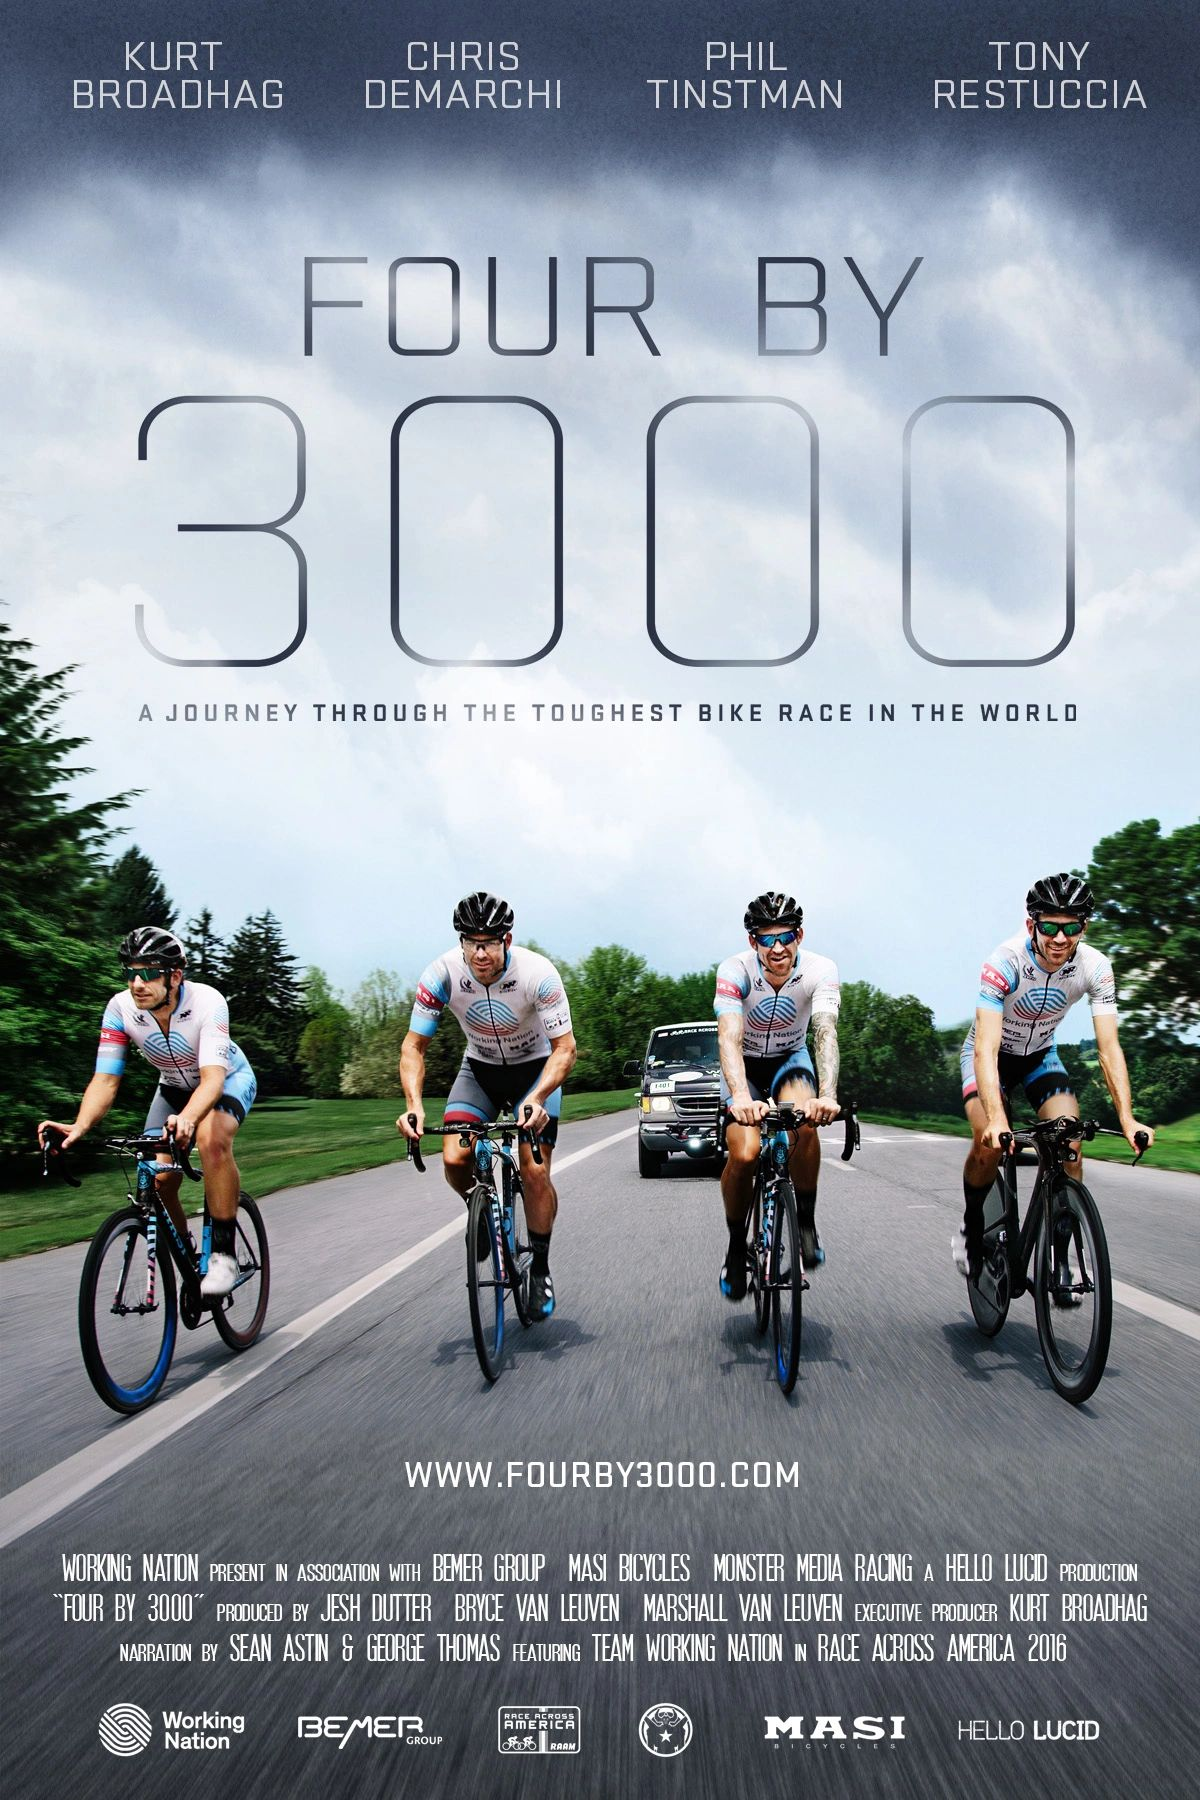 the movie four by 3000